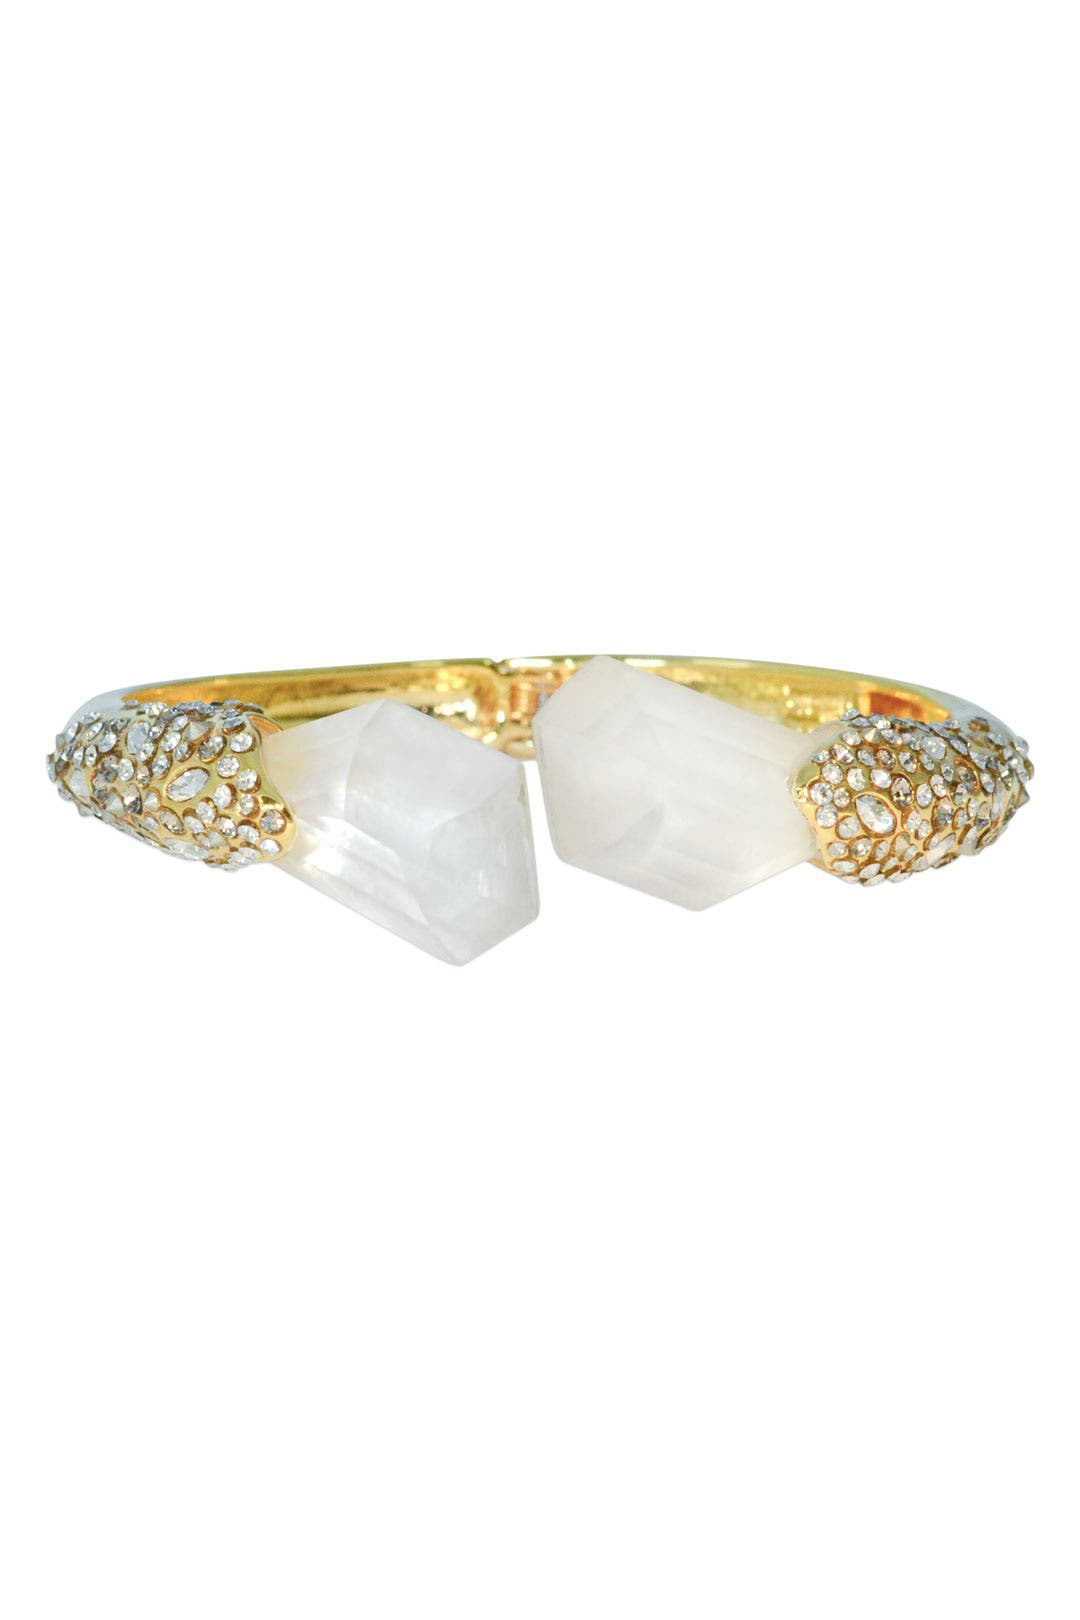 Serpentine Quartz Cuff by Alexis Bittar